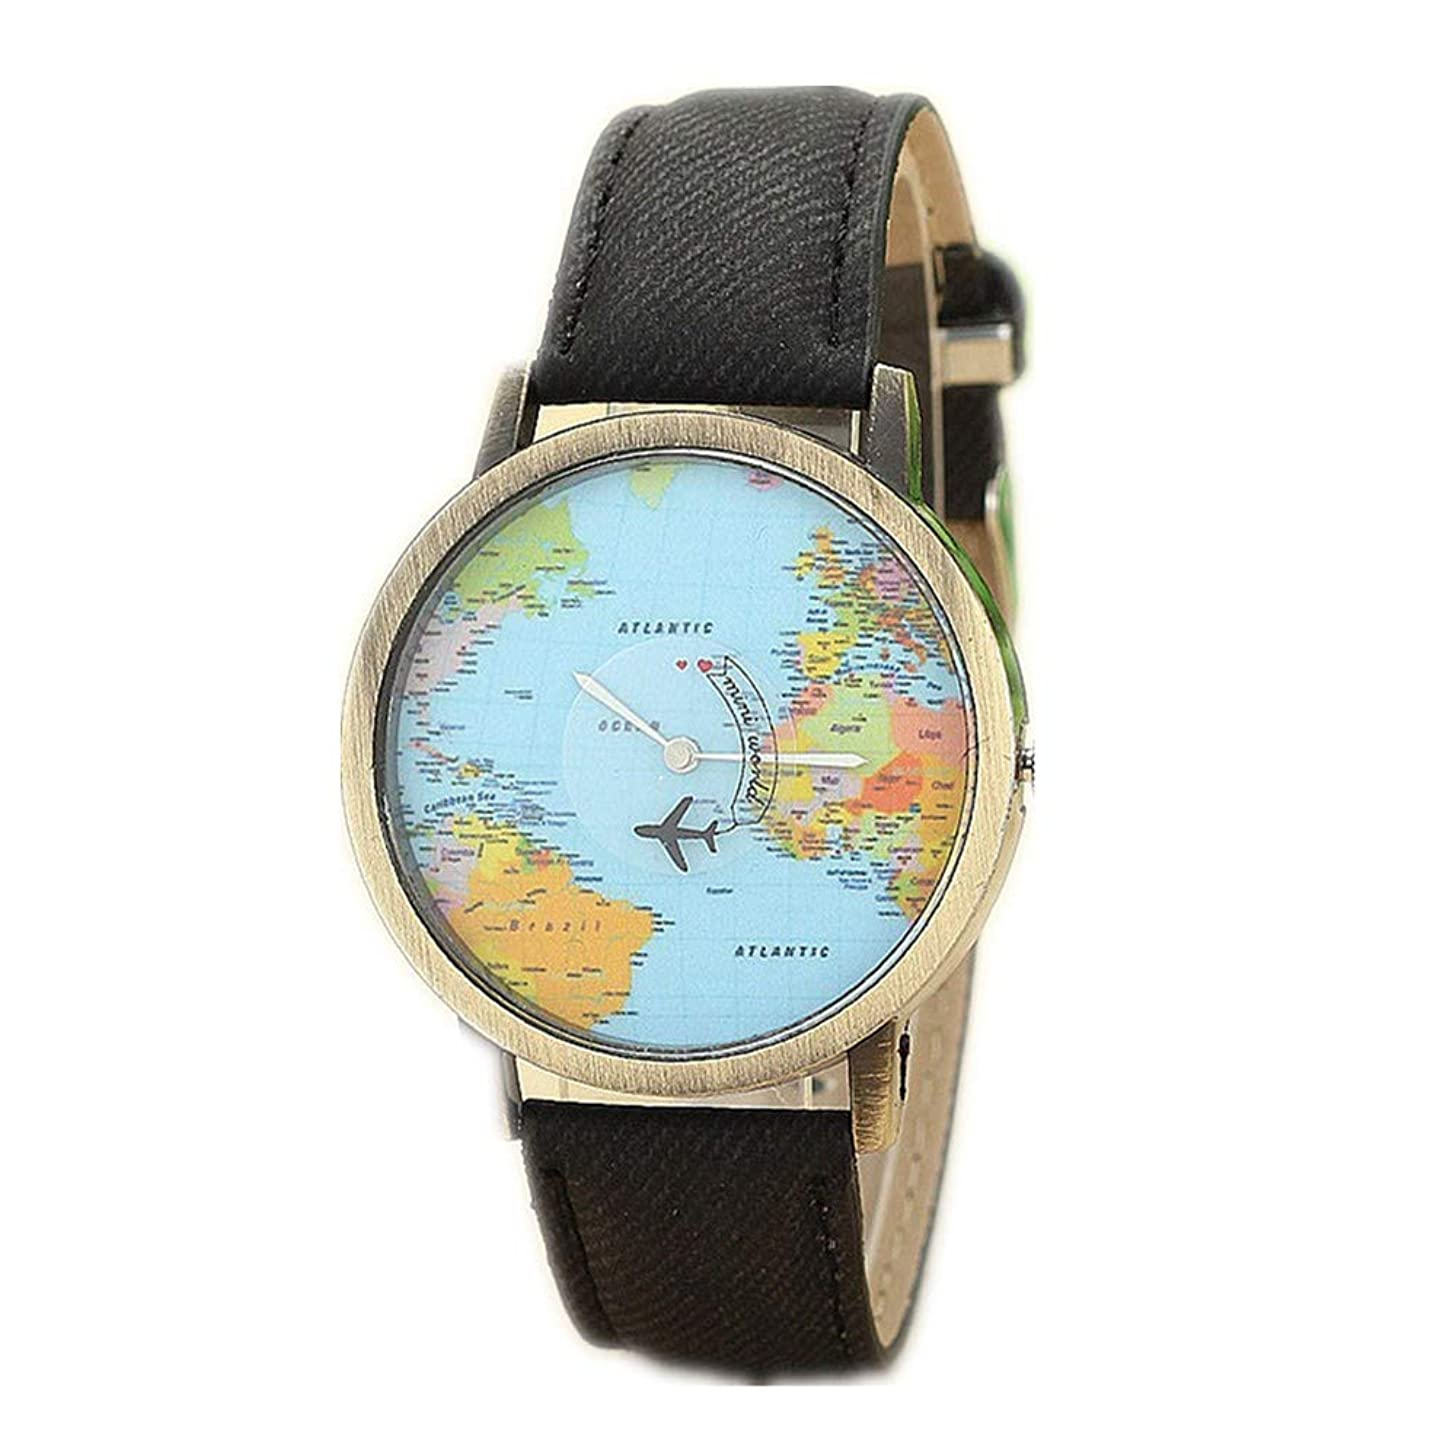 Womens Global Travel by Plane Map Watches Quealent Clearance Ladies Watches Female Watches Denim Fabric Wrist Watches